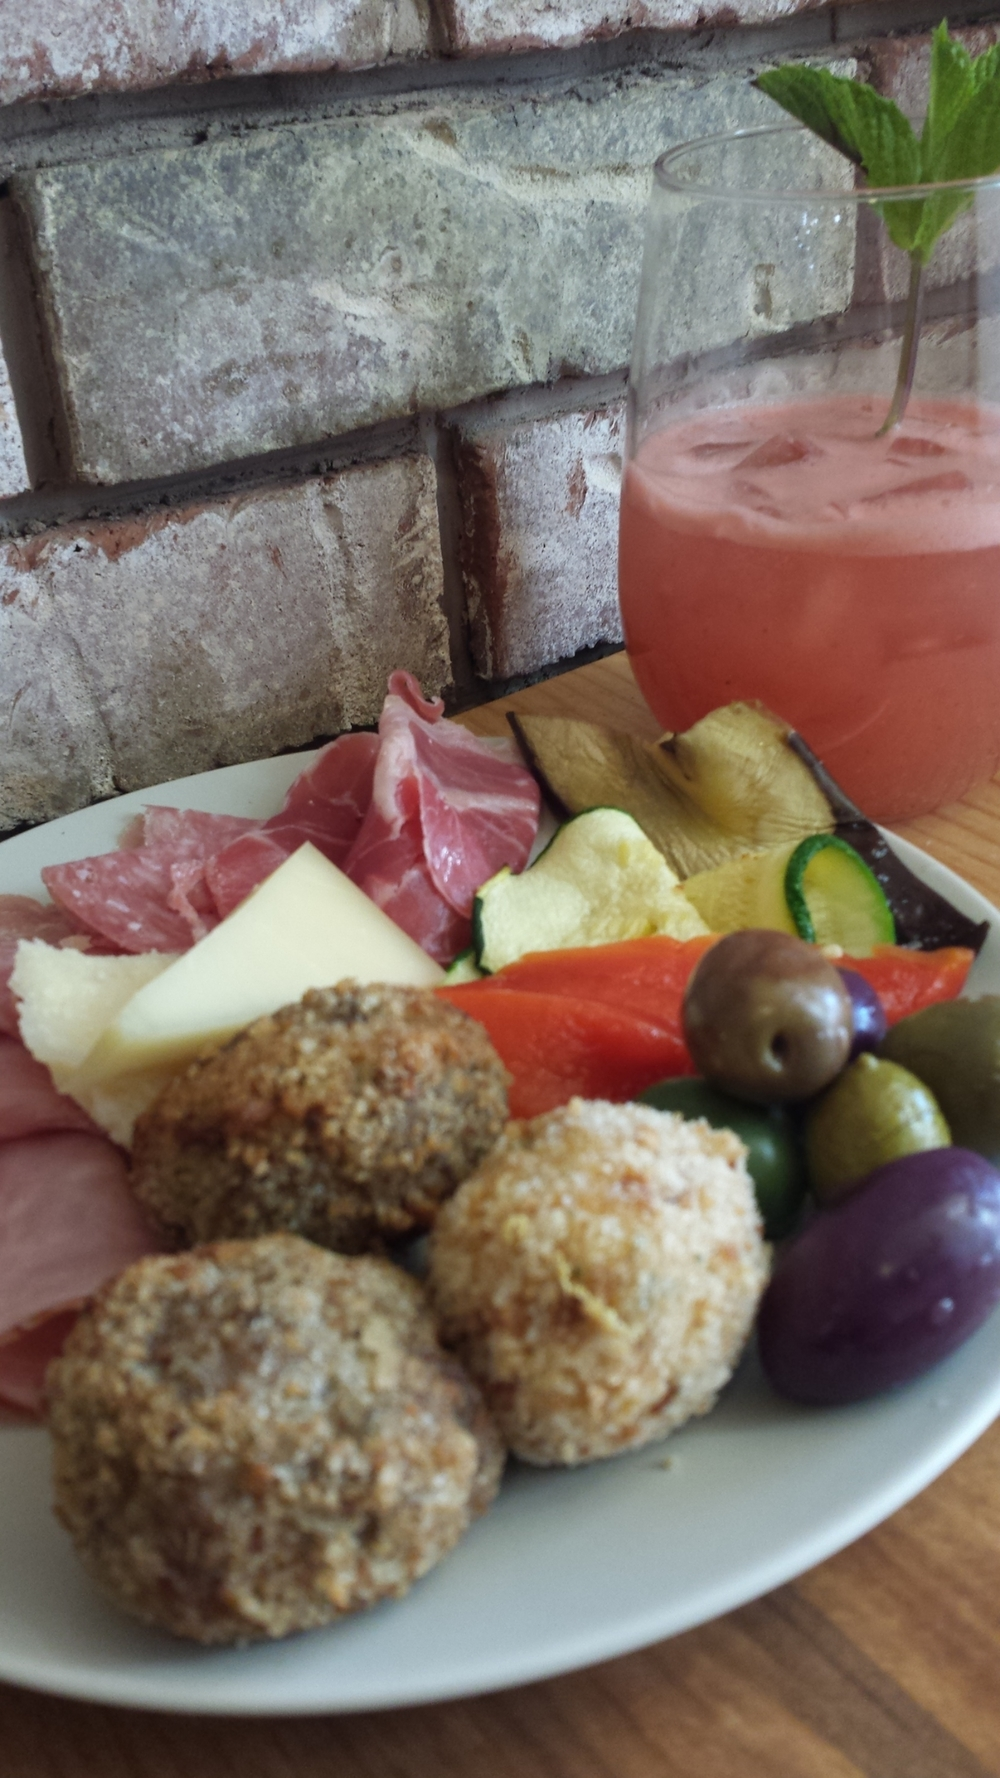 Prococco cocktail, meatless meatballs, olivi misti, affetatti, and roasted vegetables for a perfect pick-me-up after work.